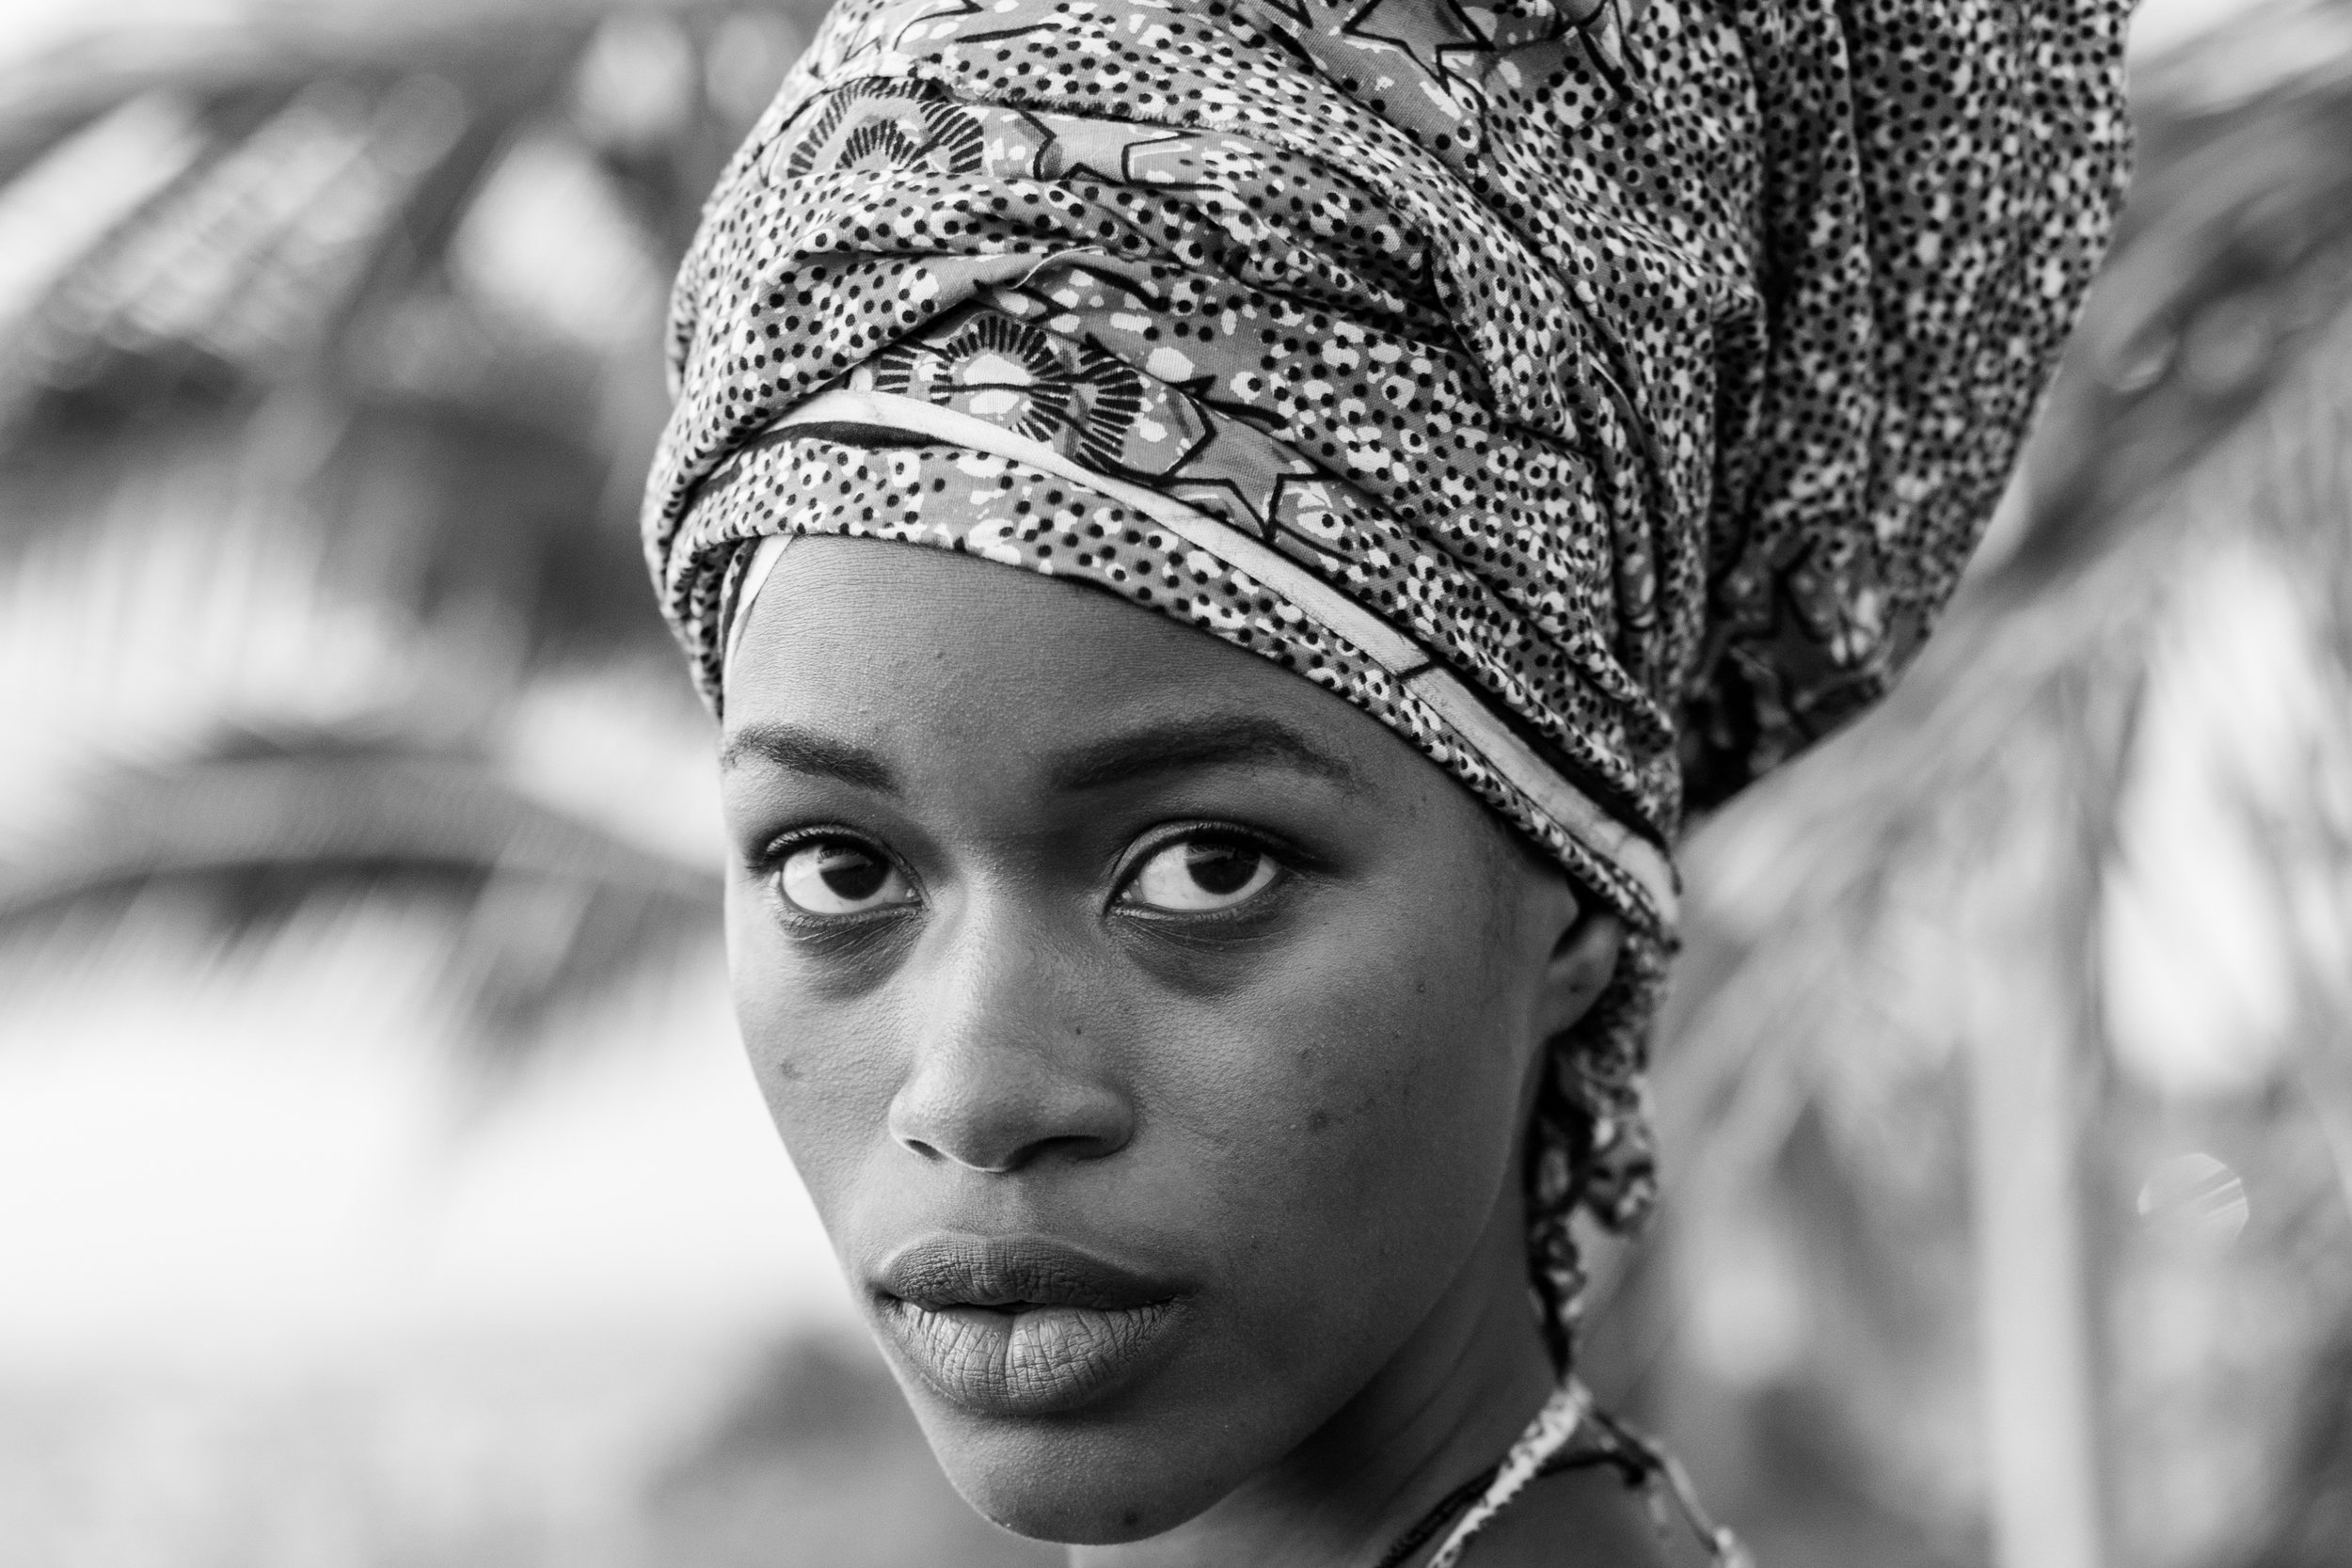 Senegal_Portrait_03.jpg